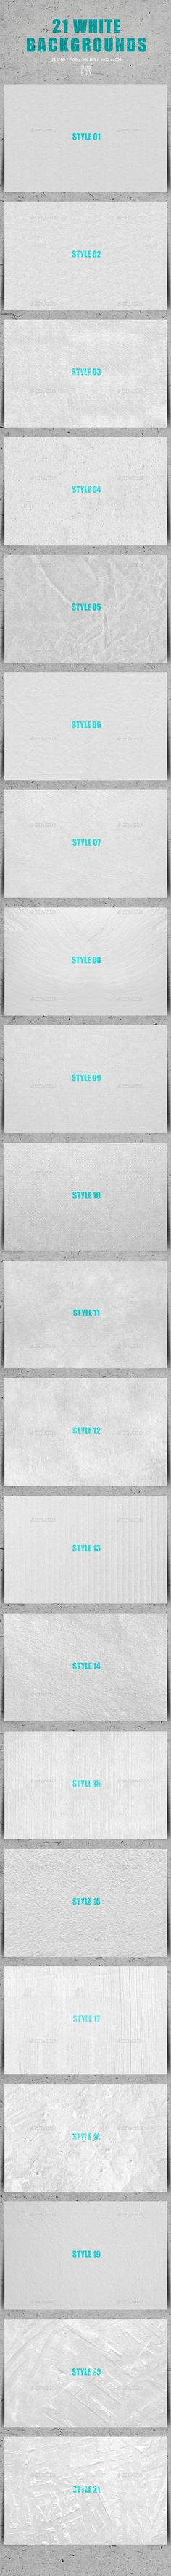 21 White Backgrounds #graphic #envatomarket #envato #download #abstract #backdrop #canvas #clean #grunge #minimal #old #paper #retro #background #simple #snow #studio #background #subtle #template #background #texture #tileable #vintage #wall #watercolour #web #white #white